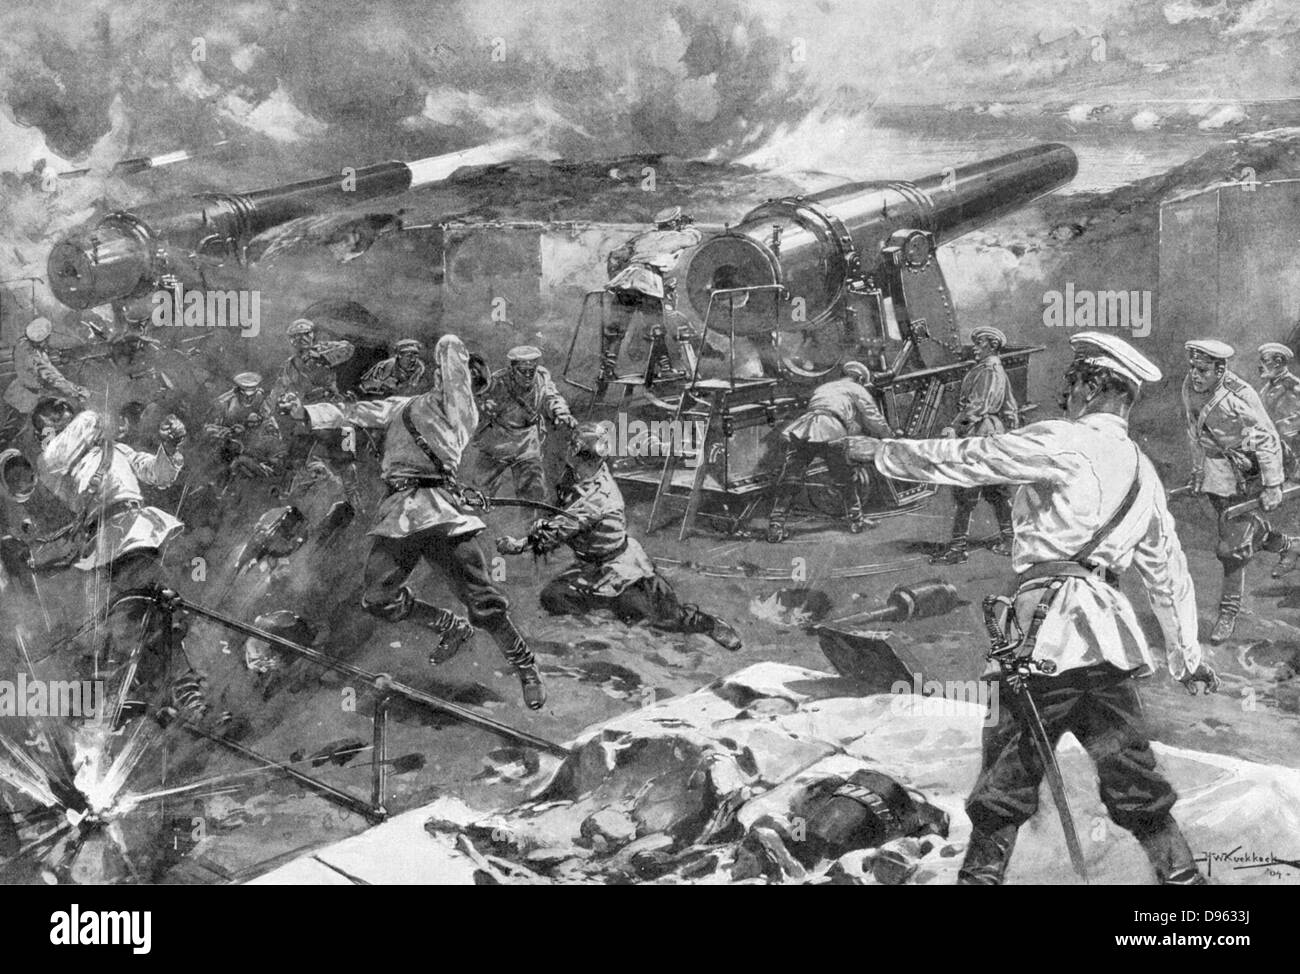 an analysis of the russian japanese war of 1904 Learn term:russo japanese war = 1904 5 with free interactive flashcards choose from 152 different sets of term:russo japanese war = 1904 5 flashcards on quizlet.